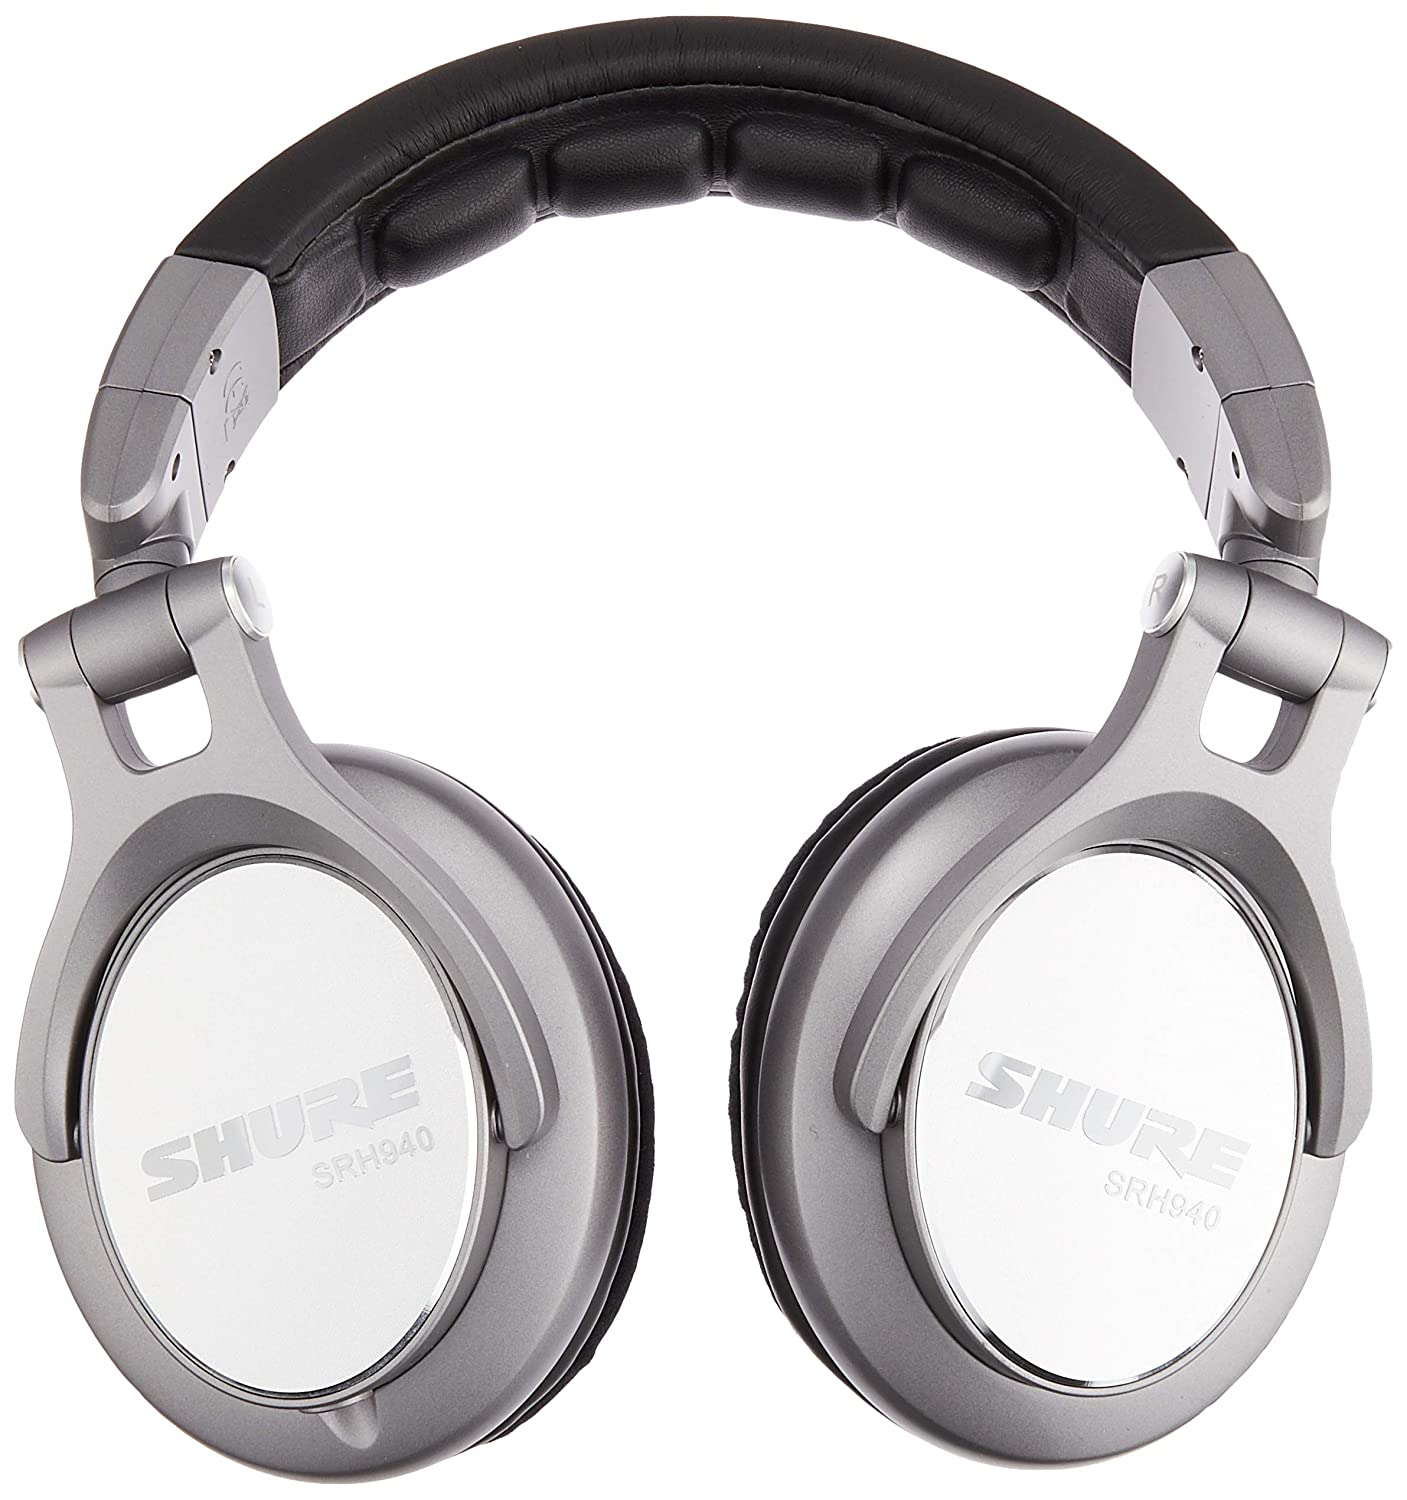 a0d557a2321 Amazon.com: Shure SRH940 Professional Reference Headphones (Silver):  Musical Instruments